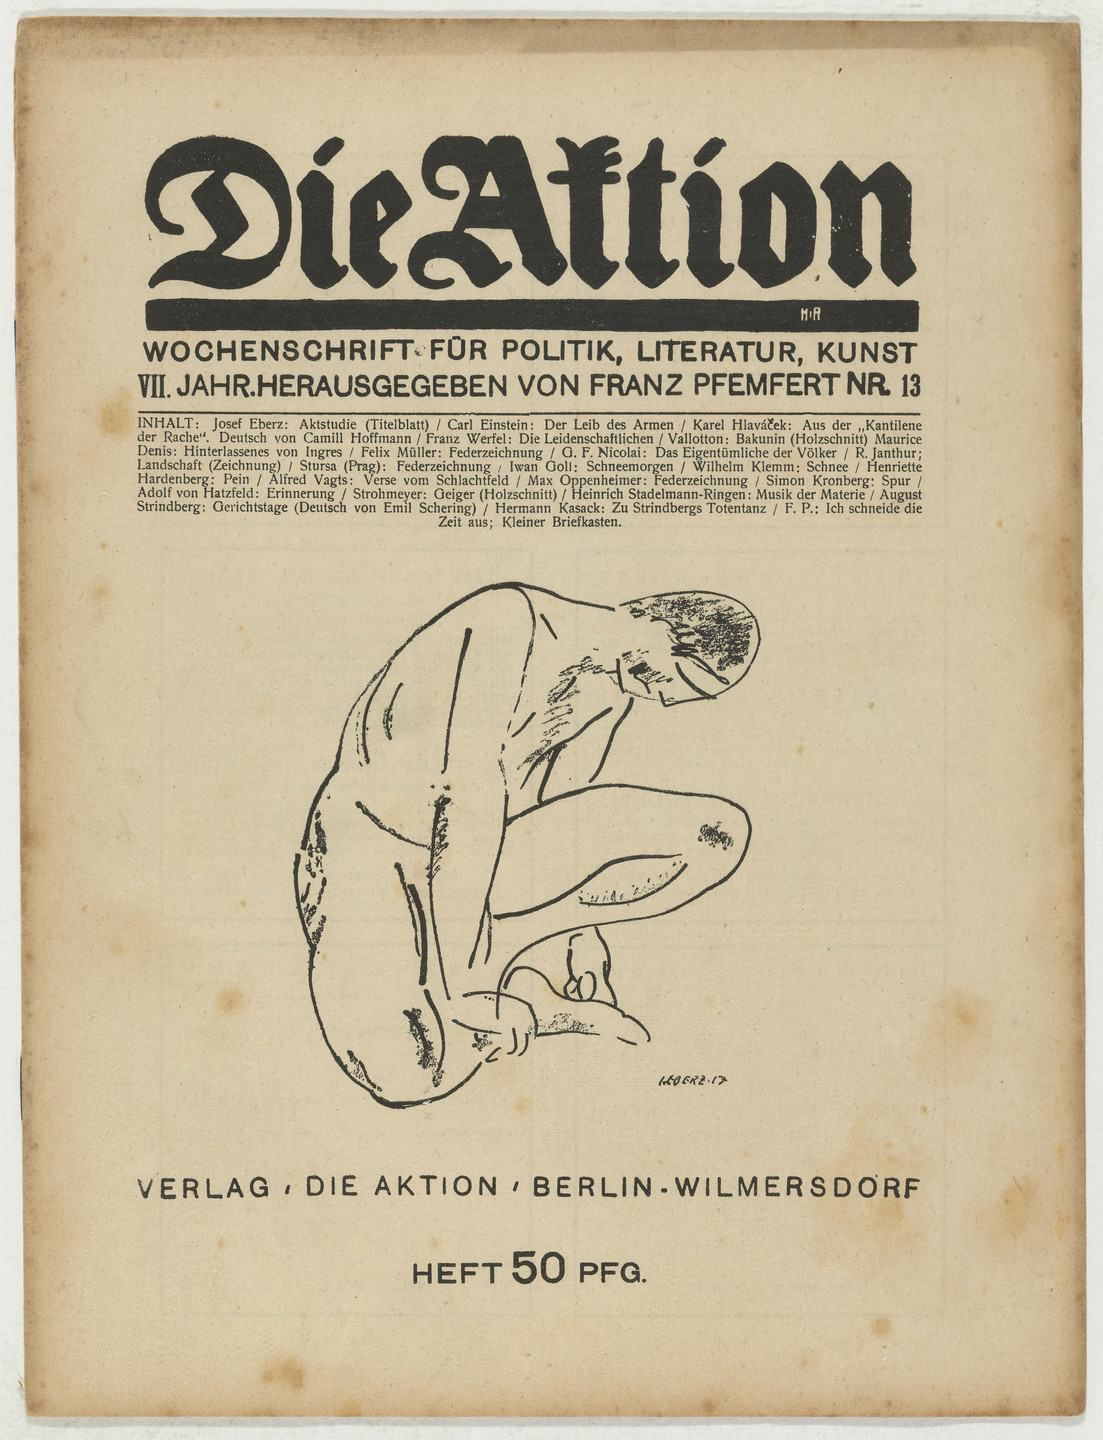 Ottheinrich Strohmeyer. Die Aktion, vol. 7, no. 13. March 30, 1917